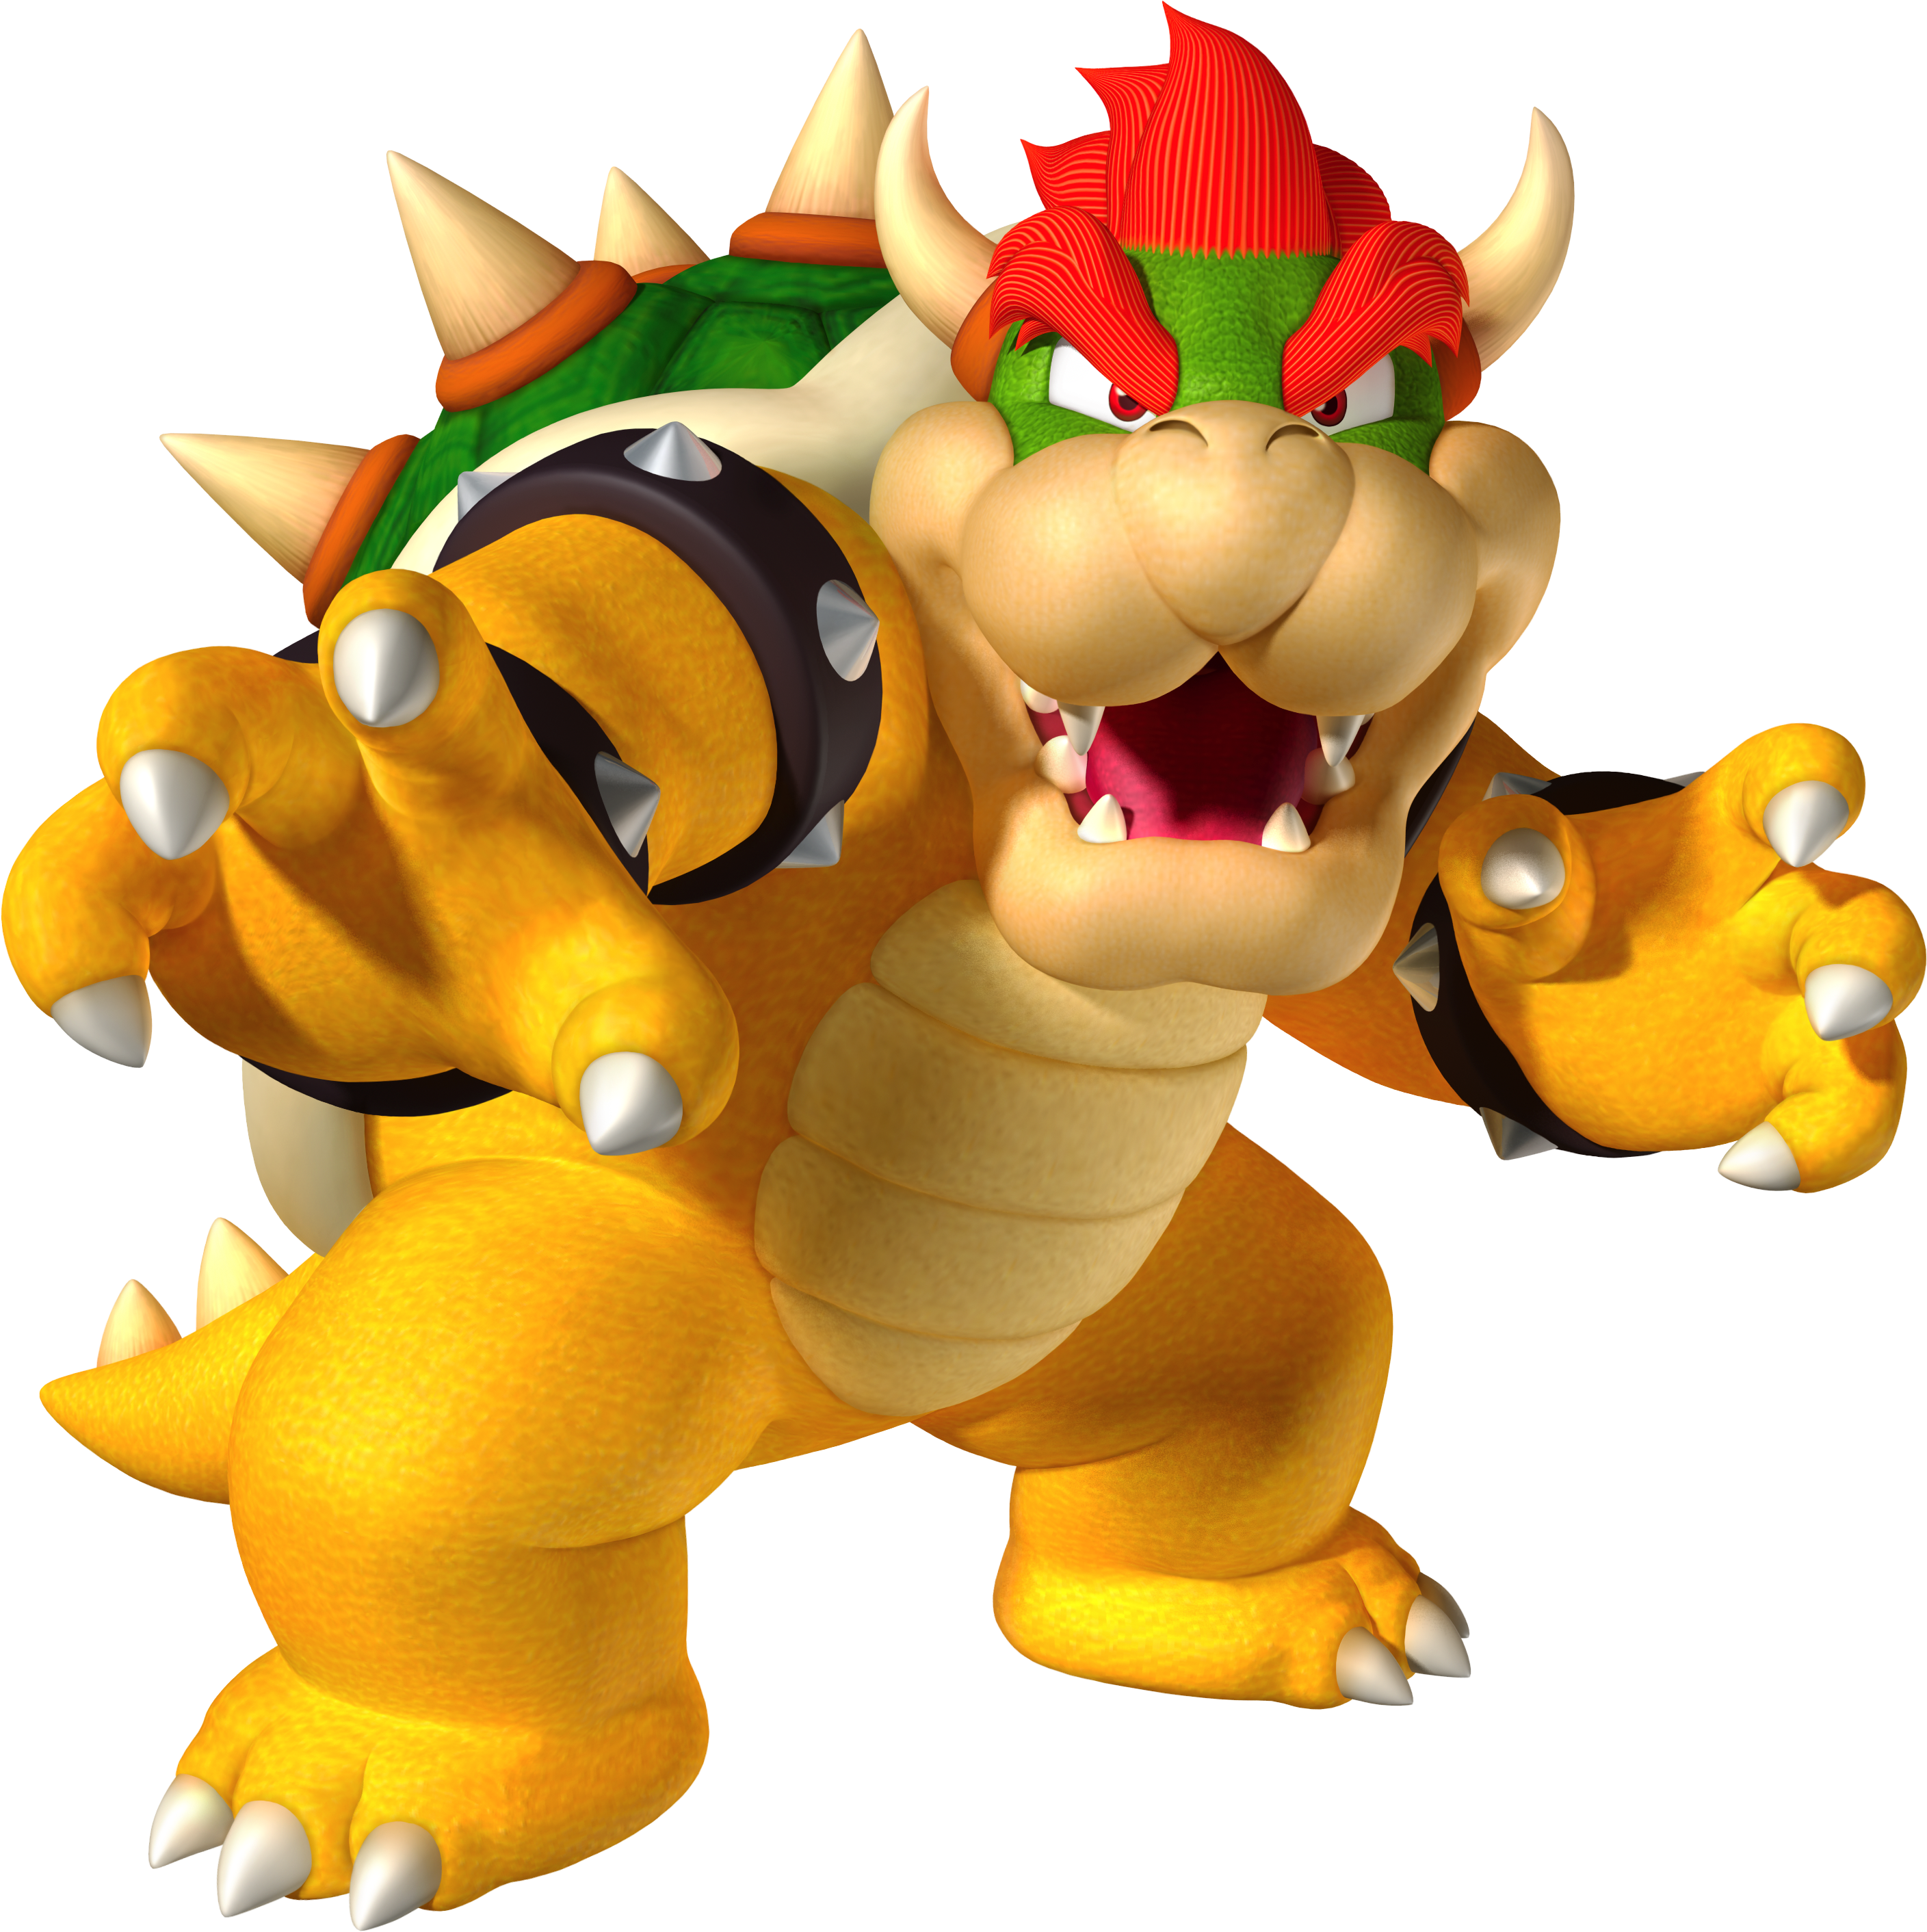 Story Toy Inside Bros Mario Bowser Stuffed PNG Image